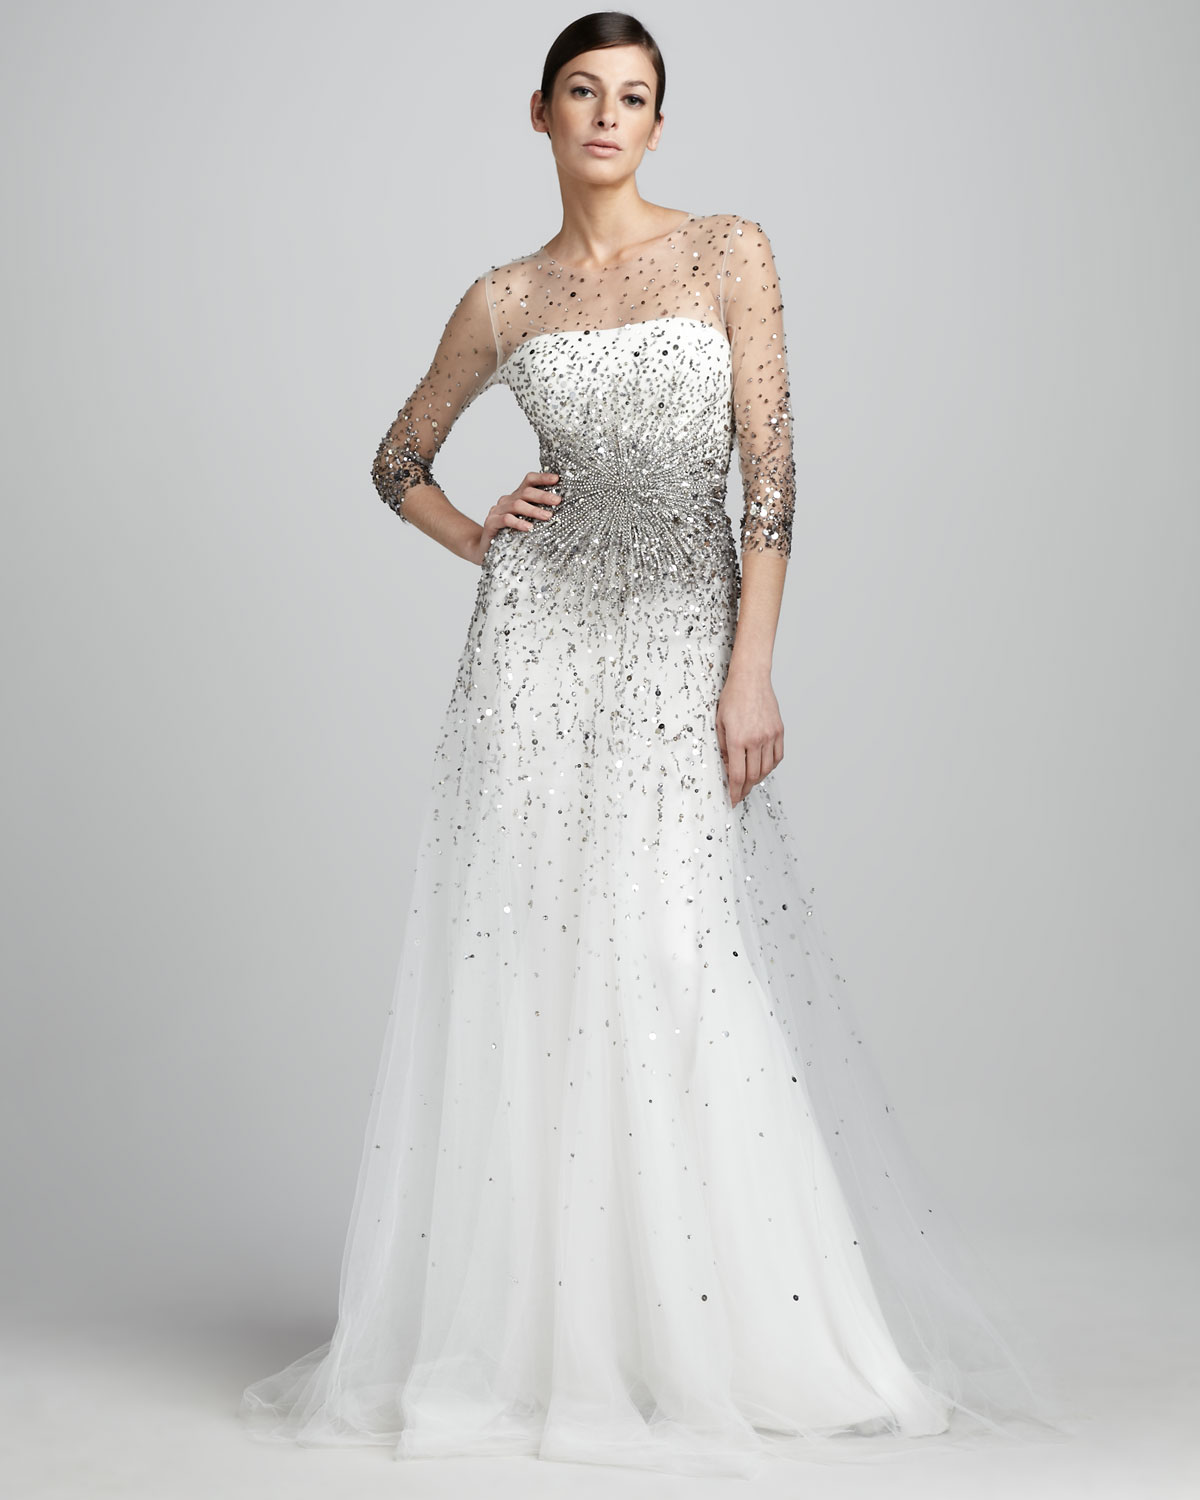 second time wedding dresses second wedding dress ideas ideas wedding dresses for second marriages and older brides wedding dresses for second marriages richmond